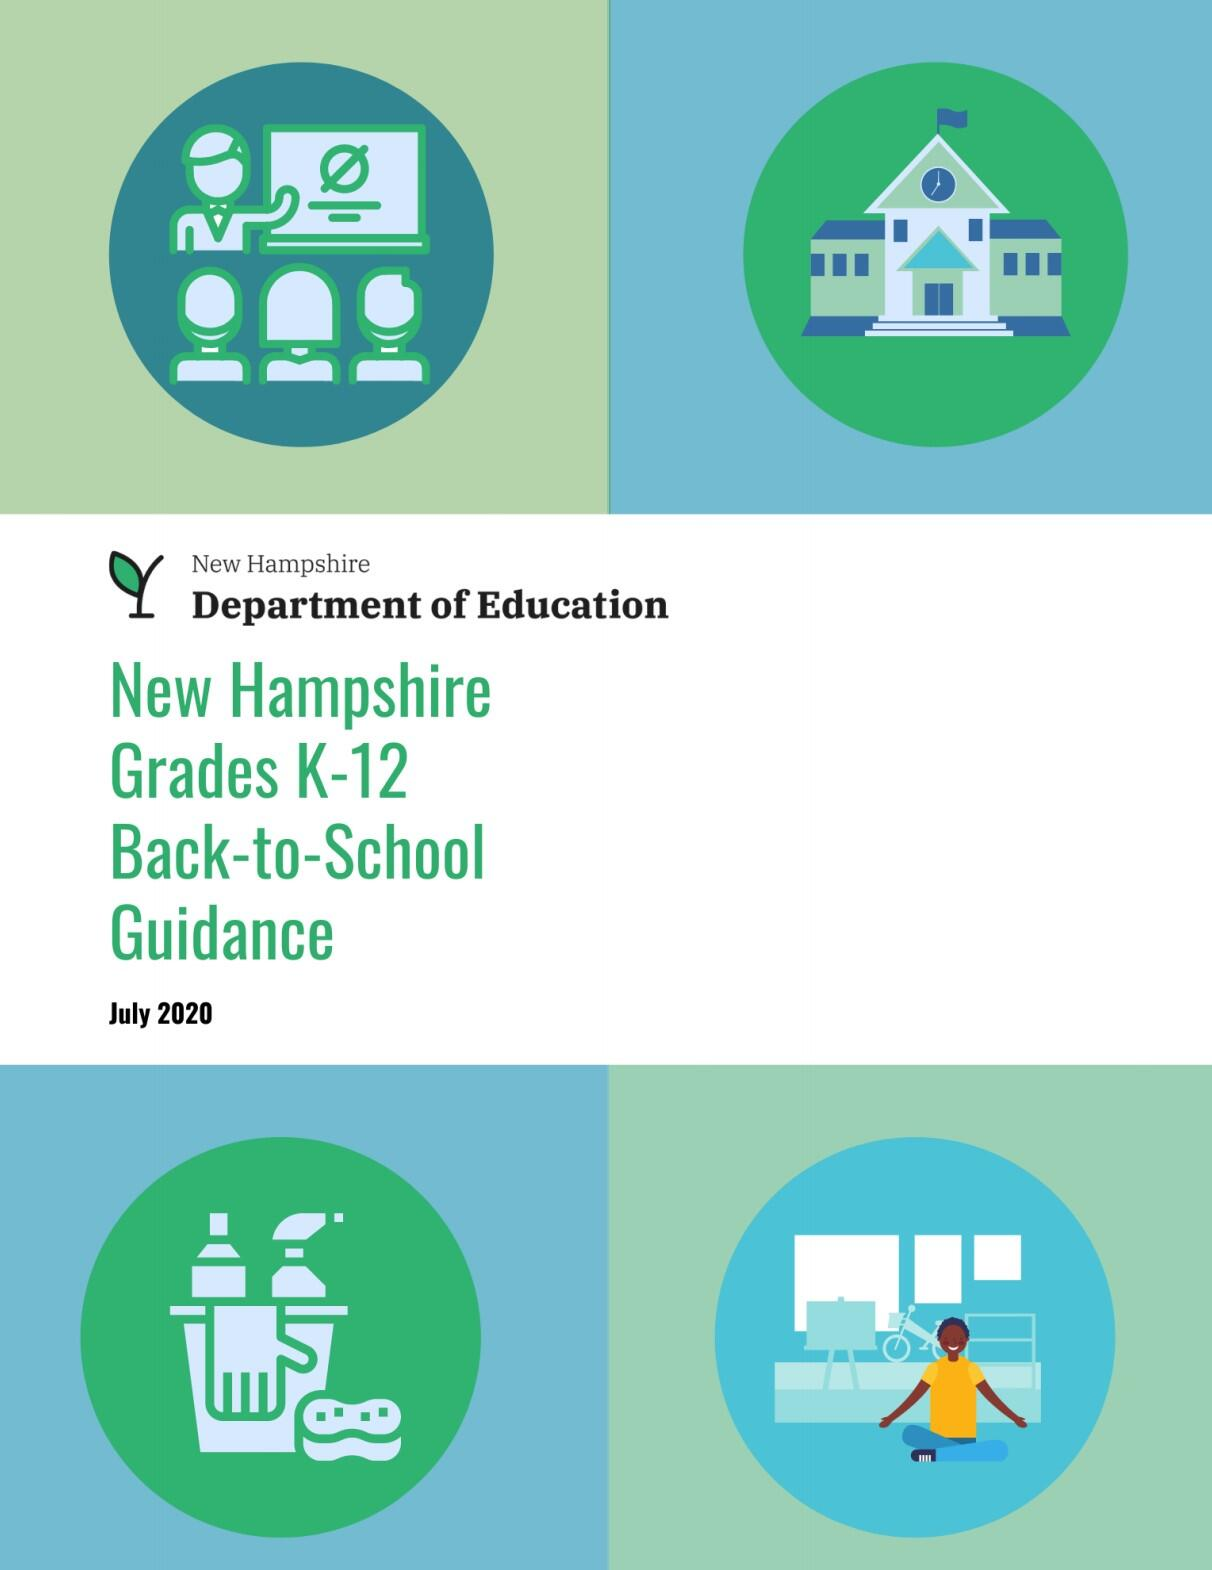 NH DOE Back-to-School Guidance booklet